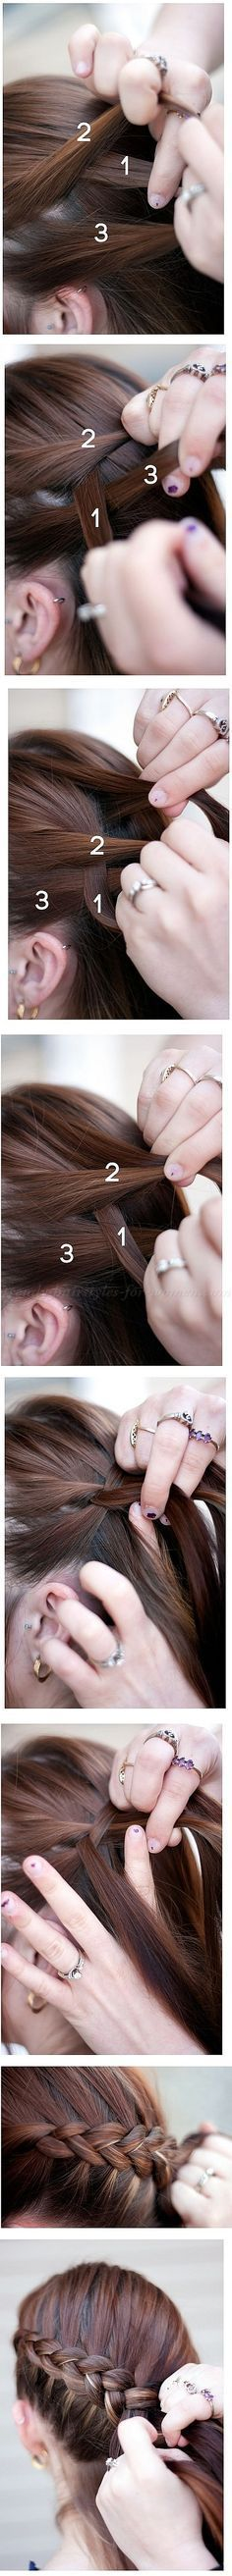 Step-by-Step: Hunger Games - Katniss Everdeen Hair Braid